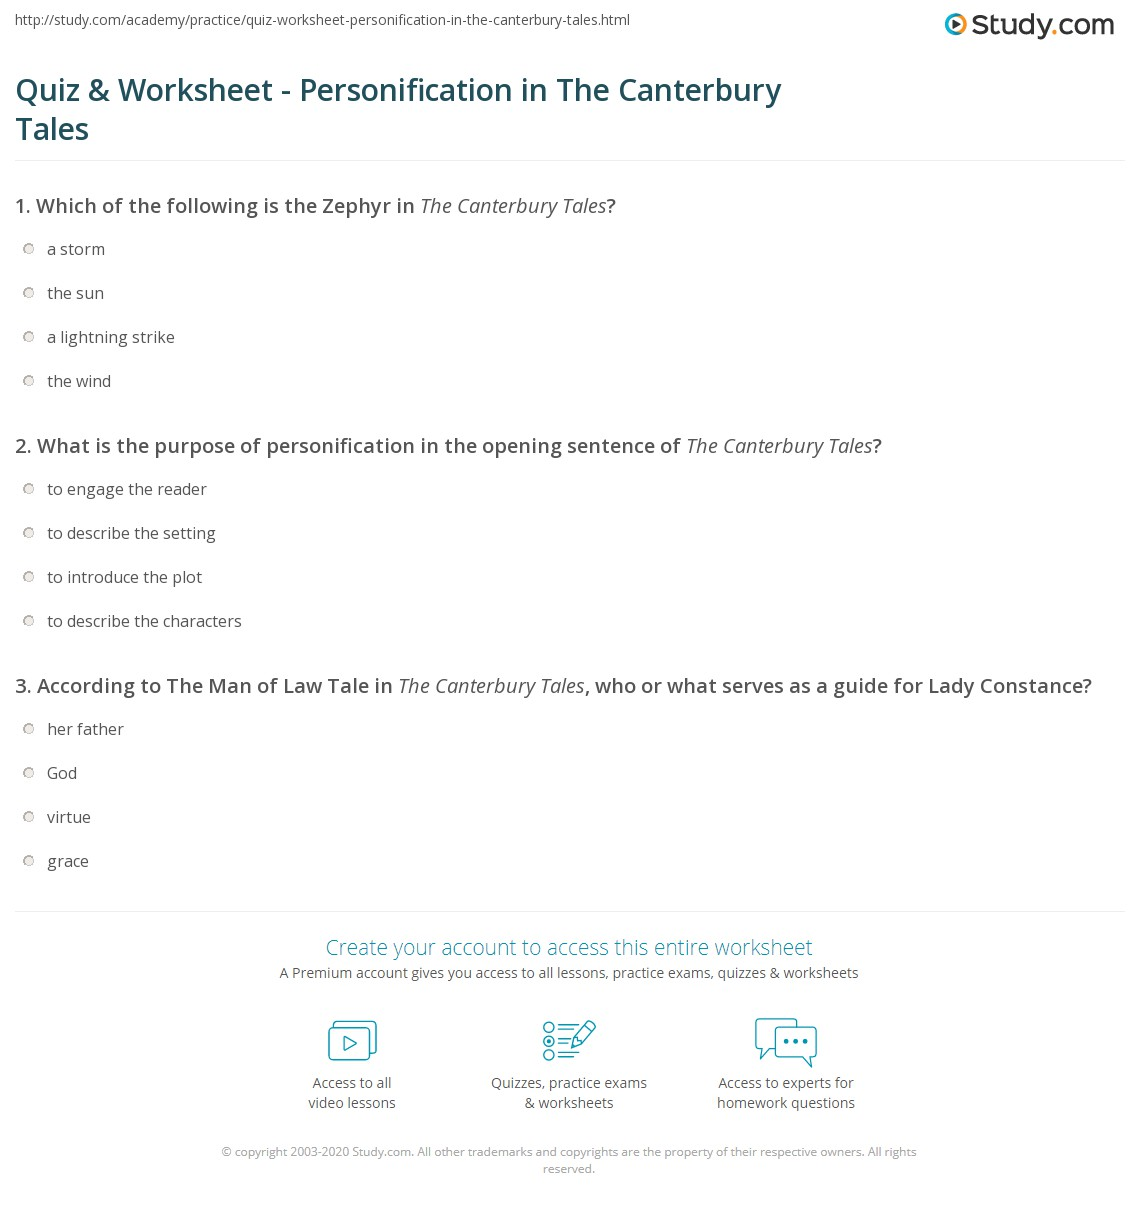 Quiz Worksheet Personification In The Canterbury Tales Study